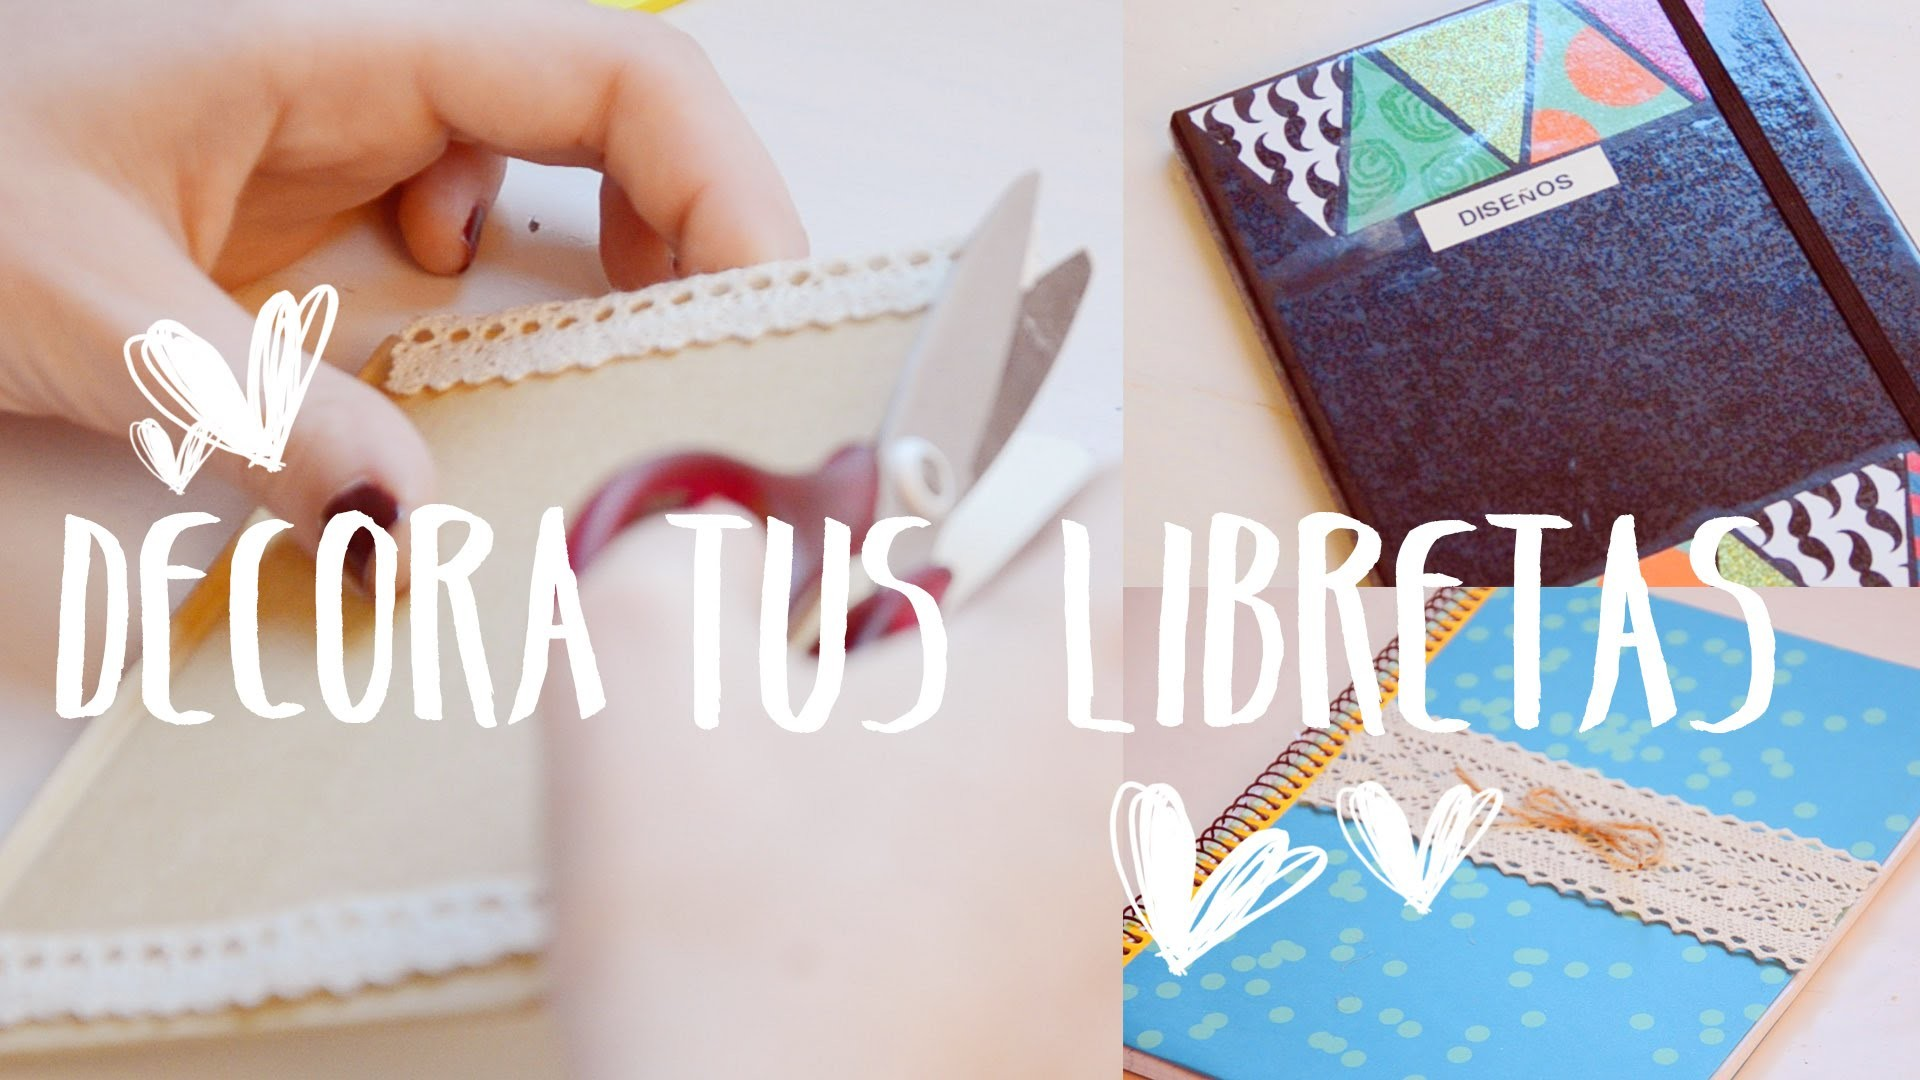 ♡ IDEAS PARA DECORAR TUS CUADERNOS ♡ | Ale90cb